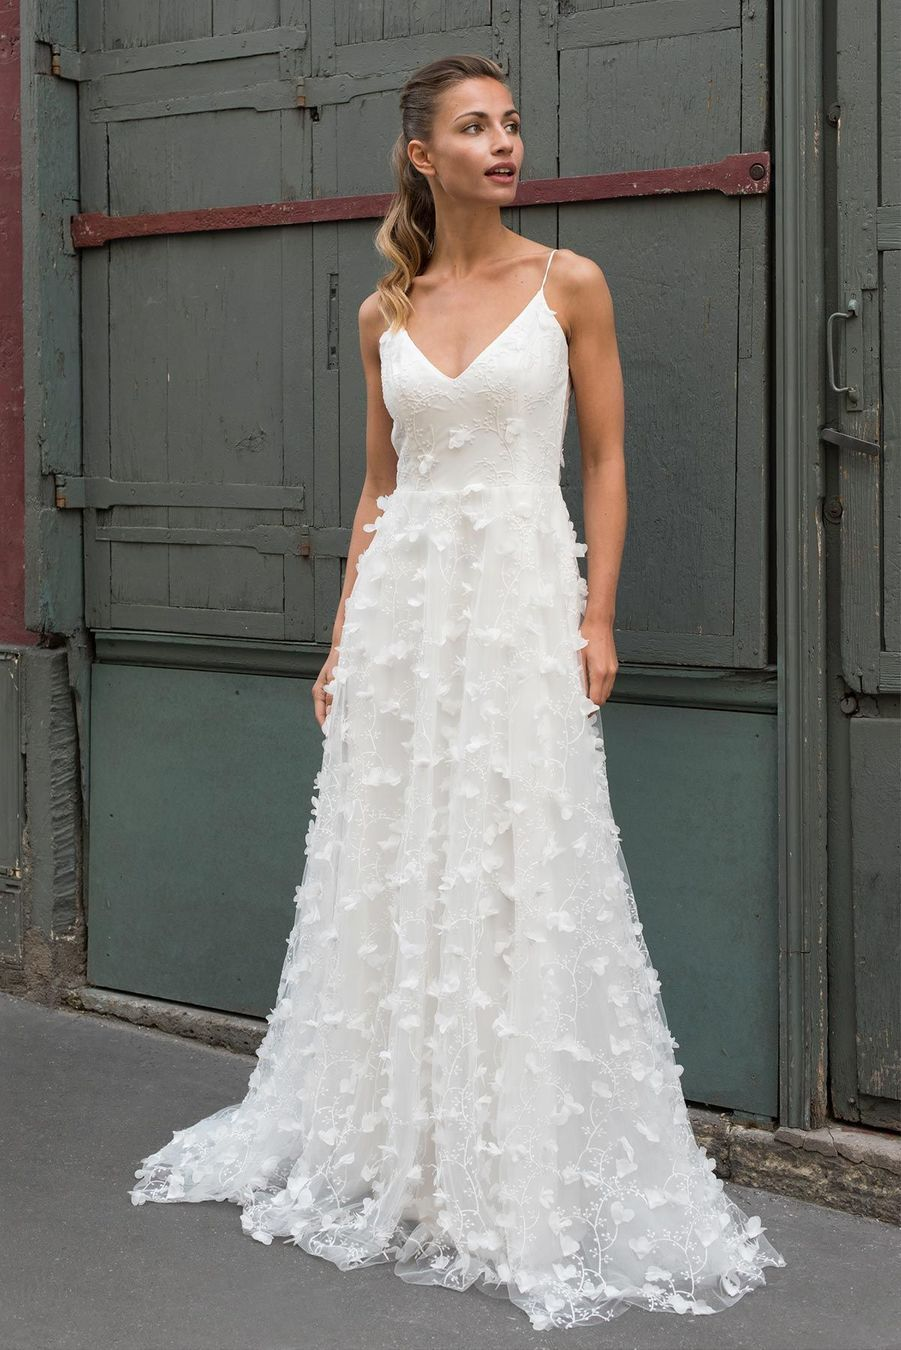 Robe de mariée à bretelles fines https://www.pinterest.fr/pin/538672805422075598/